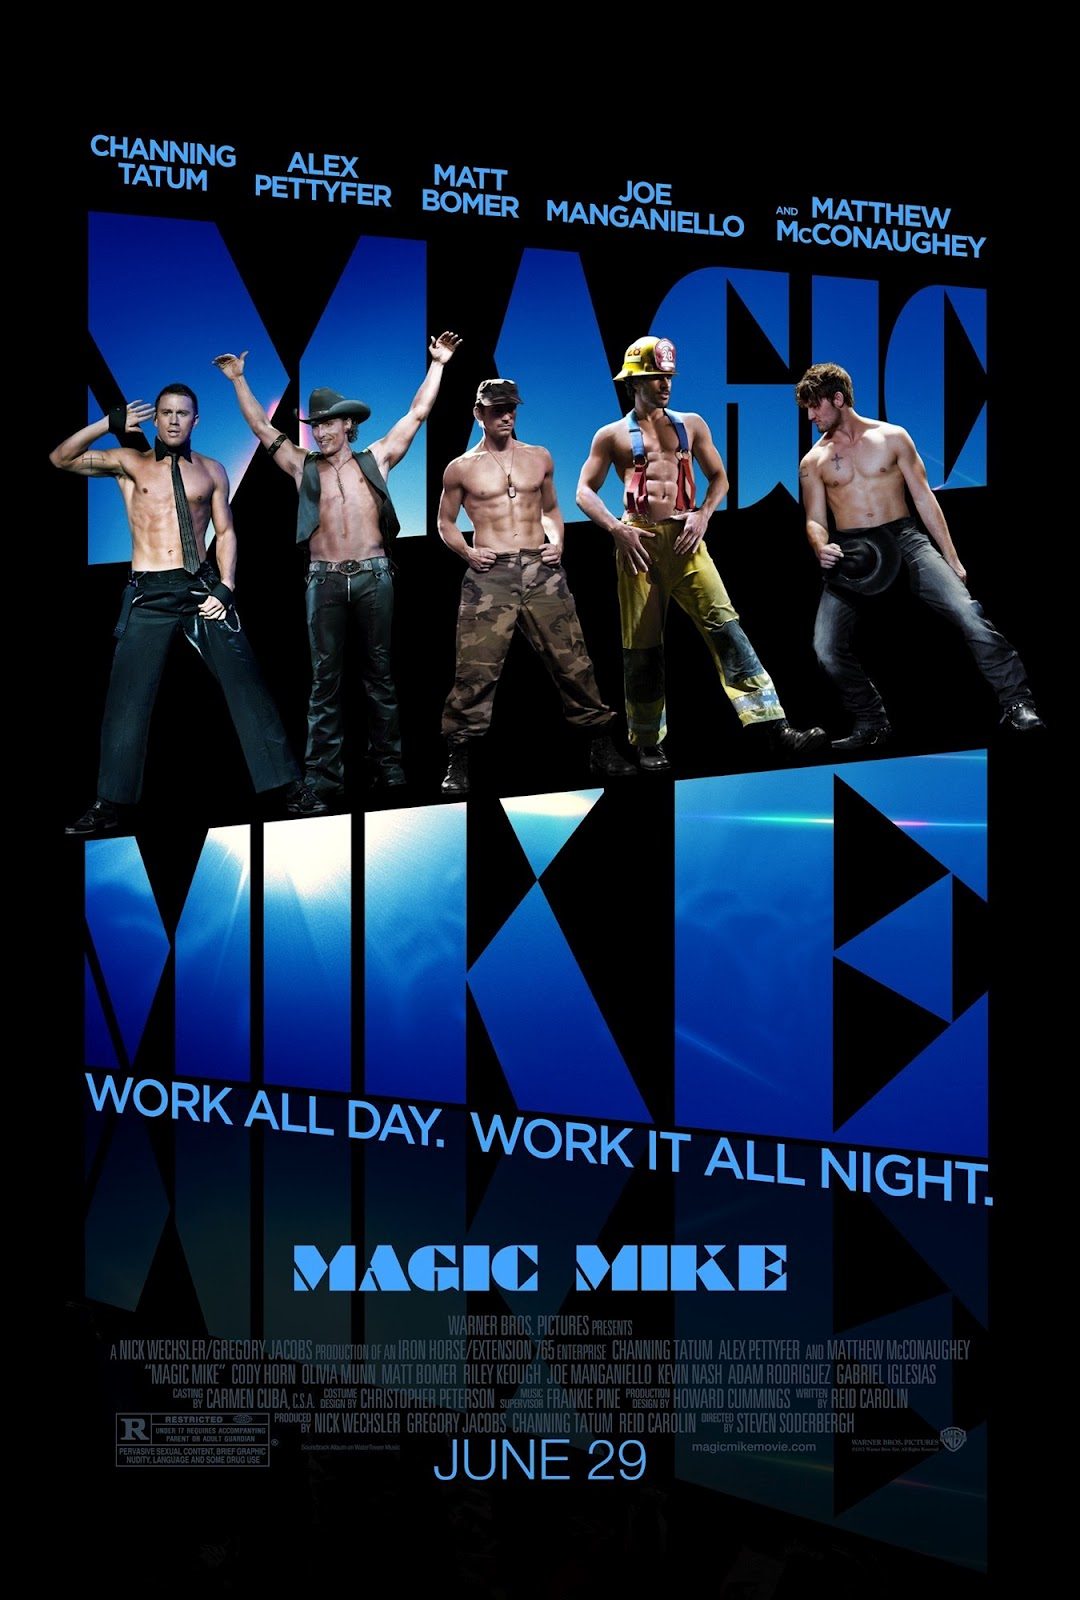 http://4.bp.blogspot.com/-xdW1qzBL8-w/T_u9ft-GDlI/AAAAAAAABa0/YUo1Fw47-cs/s1600/magic-mike-poster01.jpg